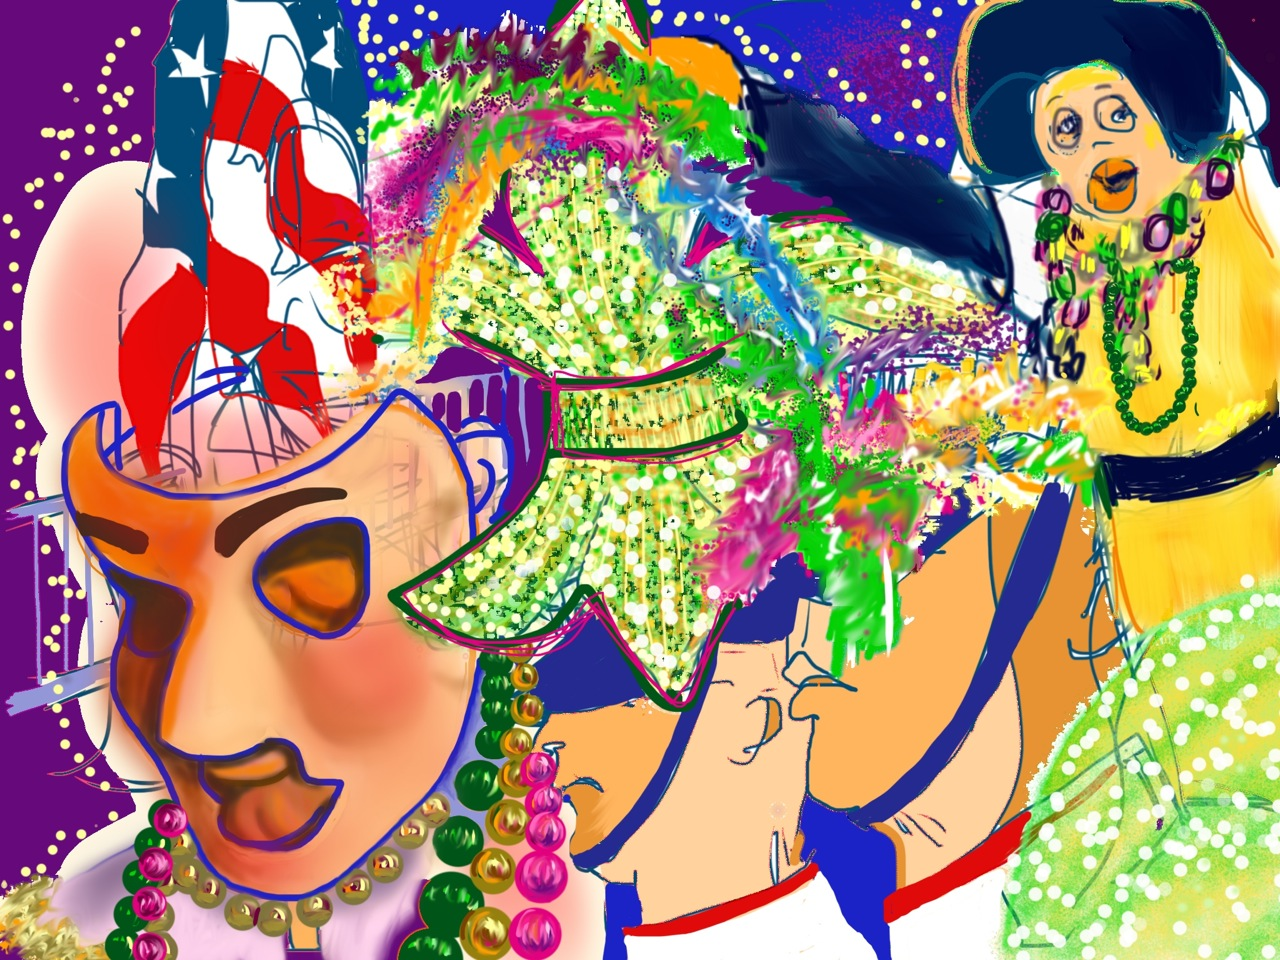 Digital Art - 17 x 13 inches on paper - New Orleans Mardi Gras series